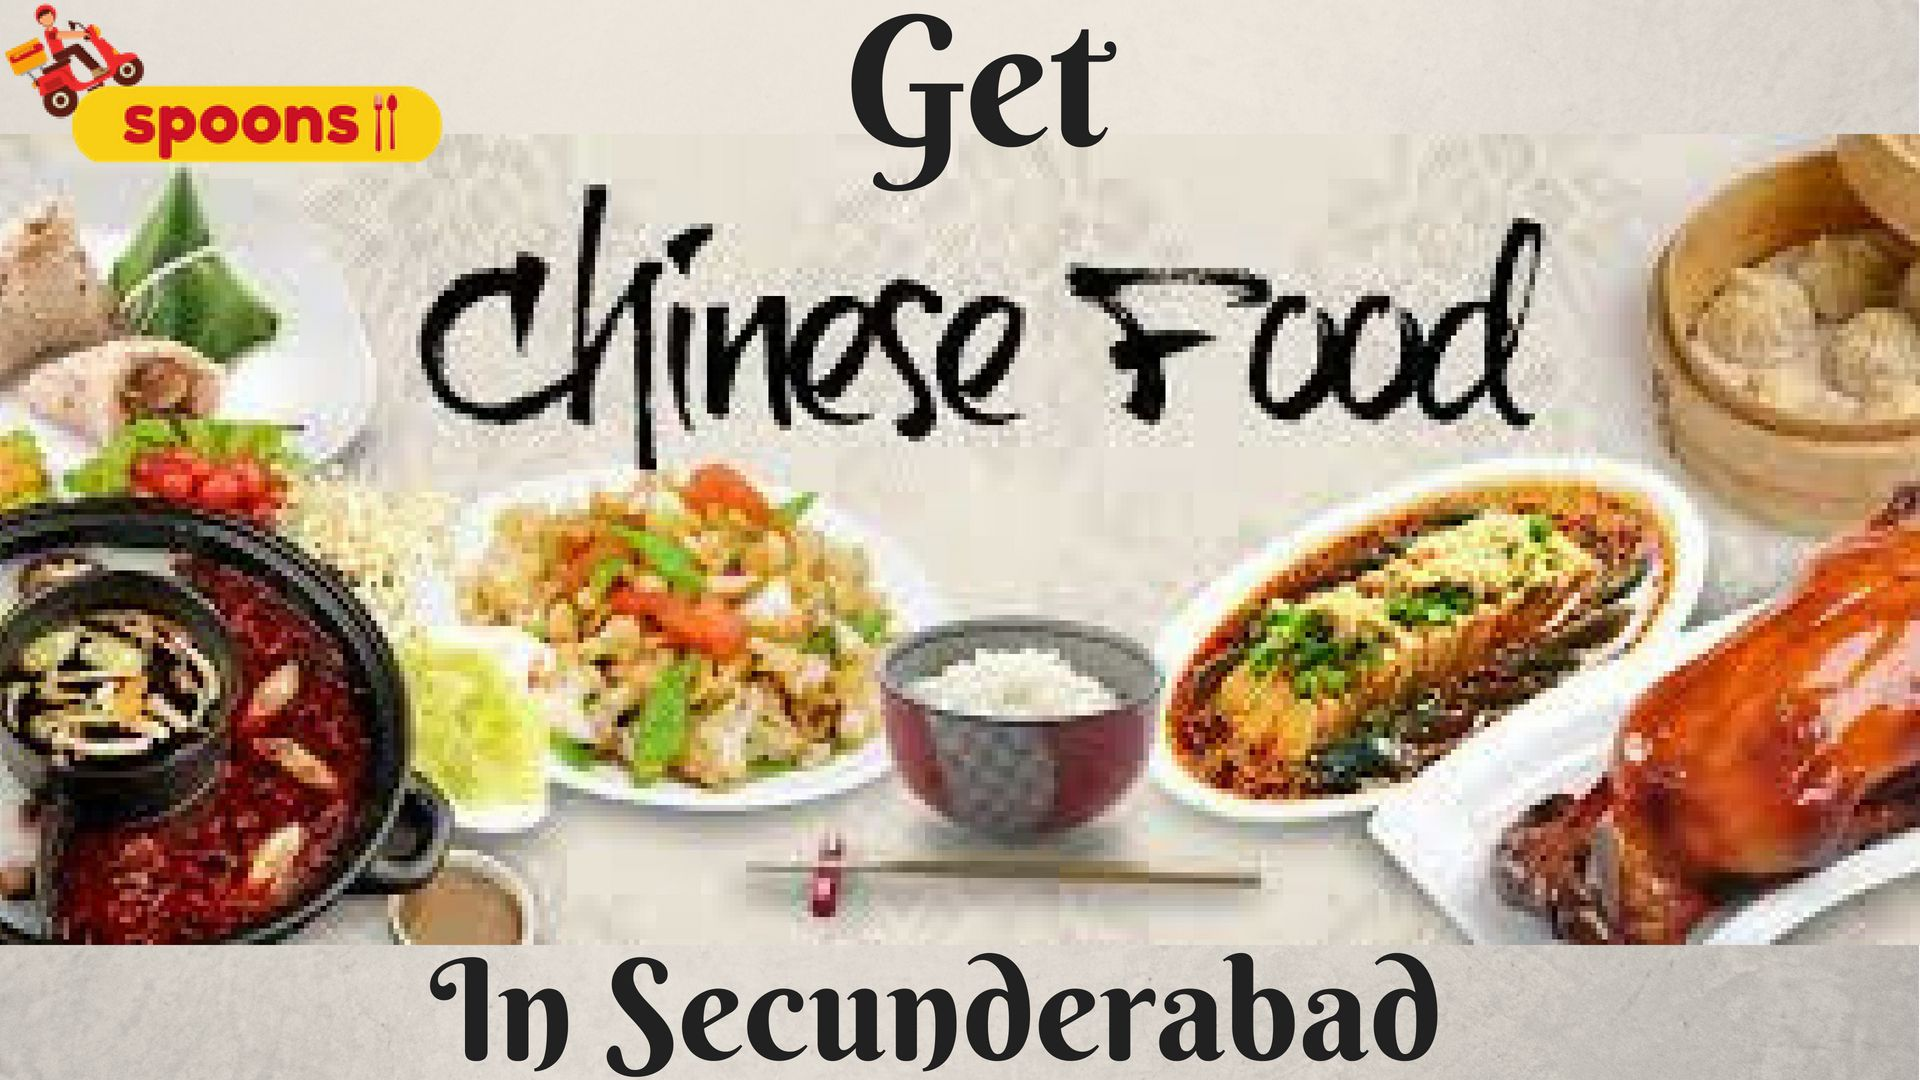 Online Chinese Food Delivery In Secunderabad Resturants With Online Food Delivery In Secundera Food Home Food Delivery Service Chinese Food Delivery